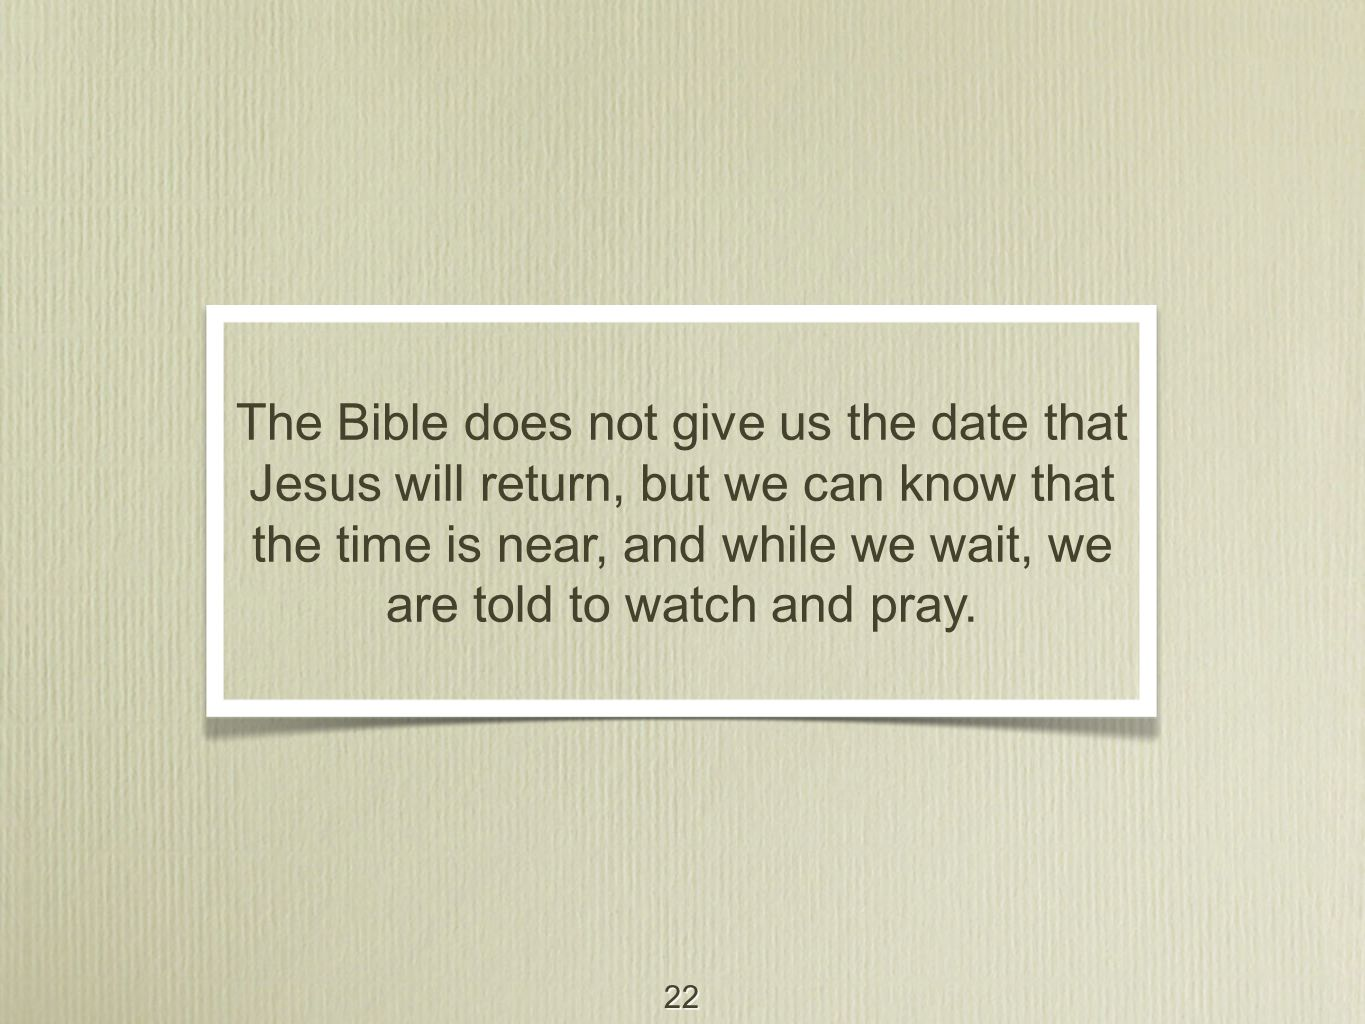 22 The Bible does not give us the date that Jesus will return, but we can know that the time is near, and while we wait, we are told to watch and pray.